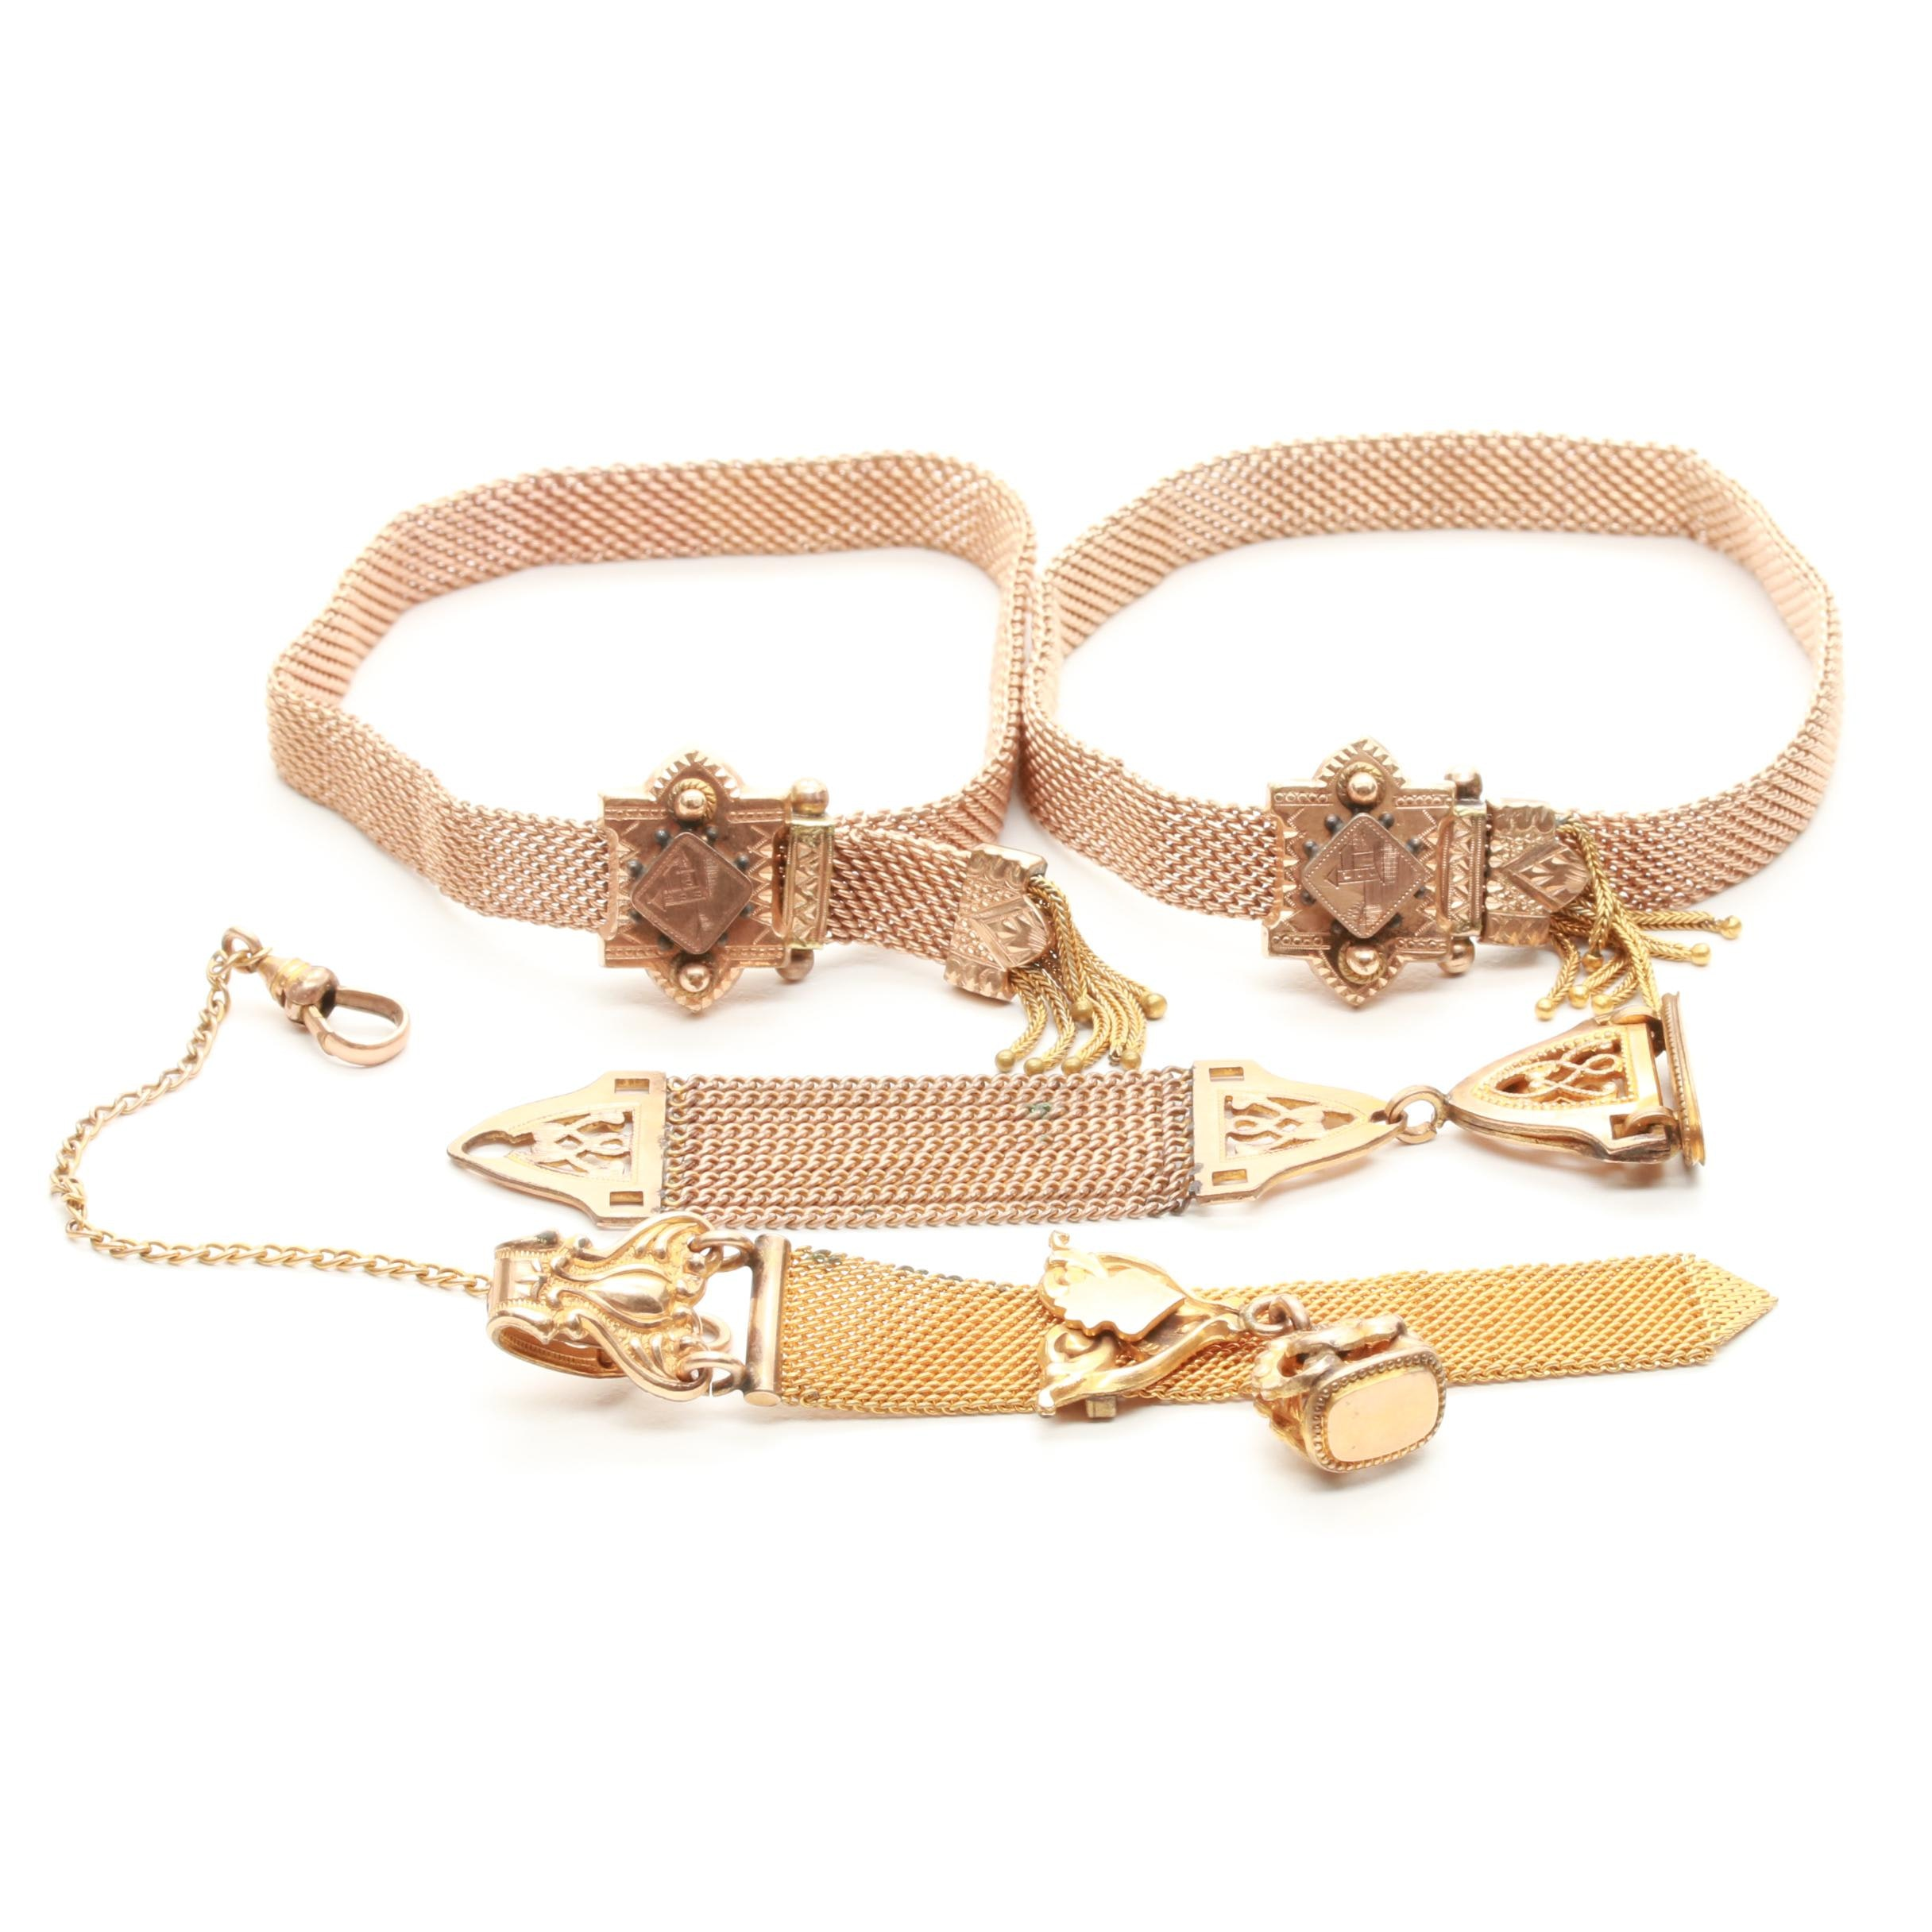 Victorian Gold Filled Slide Bracelets and Watch Fobs